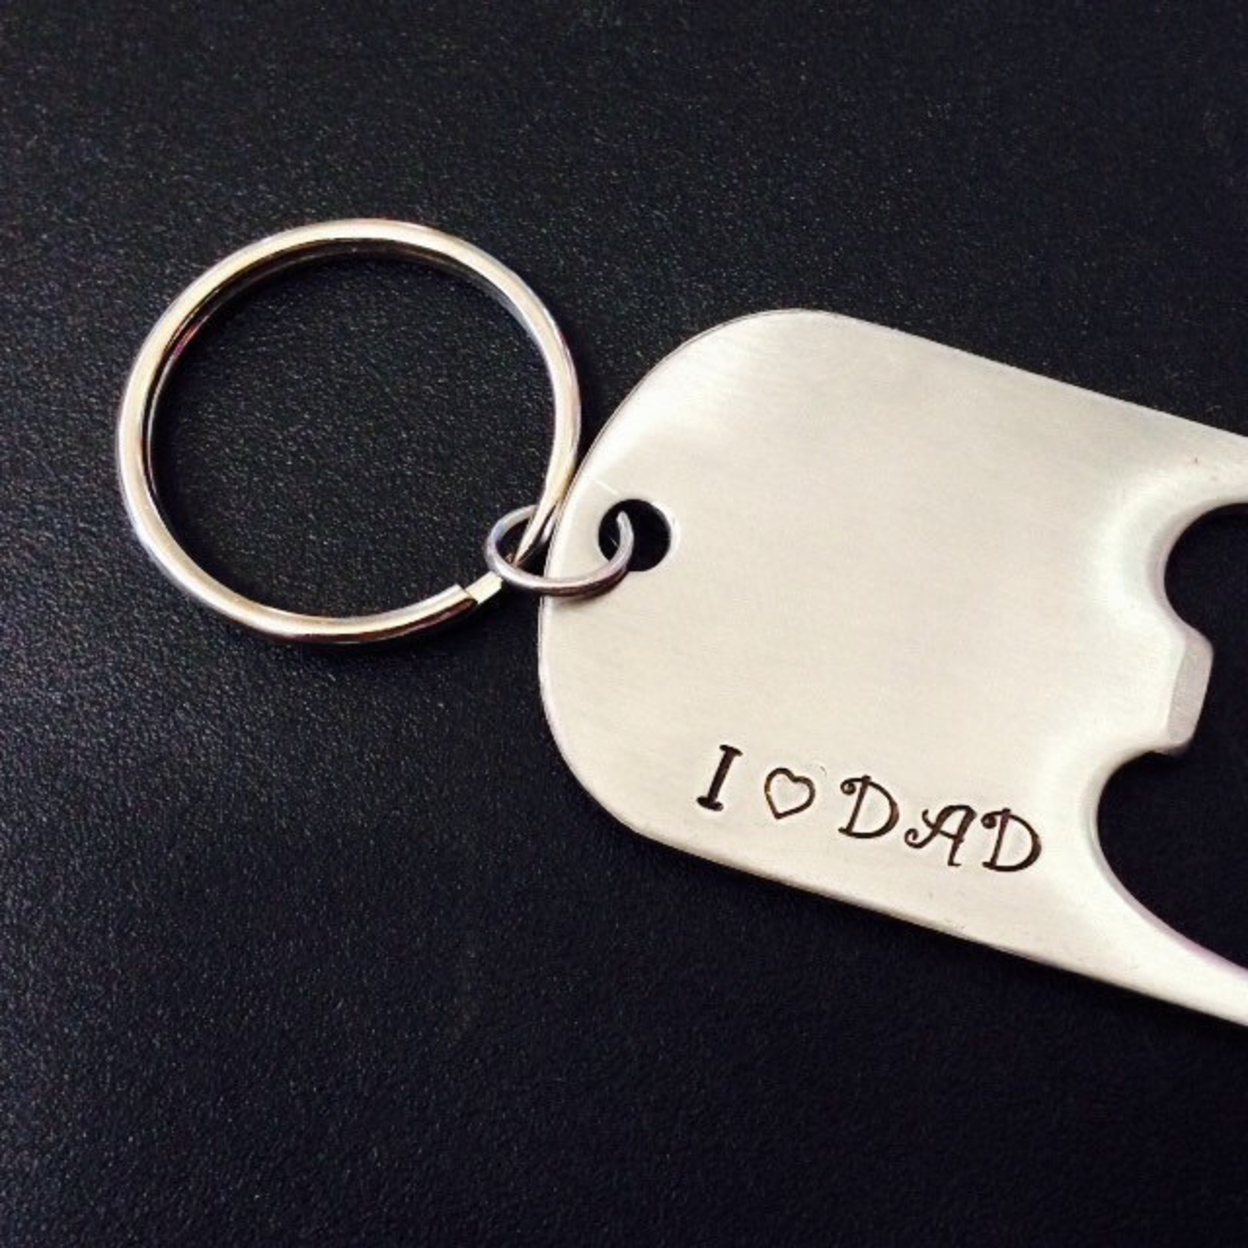 Gift For Dad Hand Stamped Key ChainGreat For Fathers Day I Love Dad Bottle Opener Key Chain Key Ring Hand Stamped With Heart